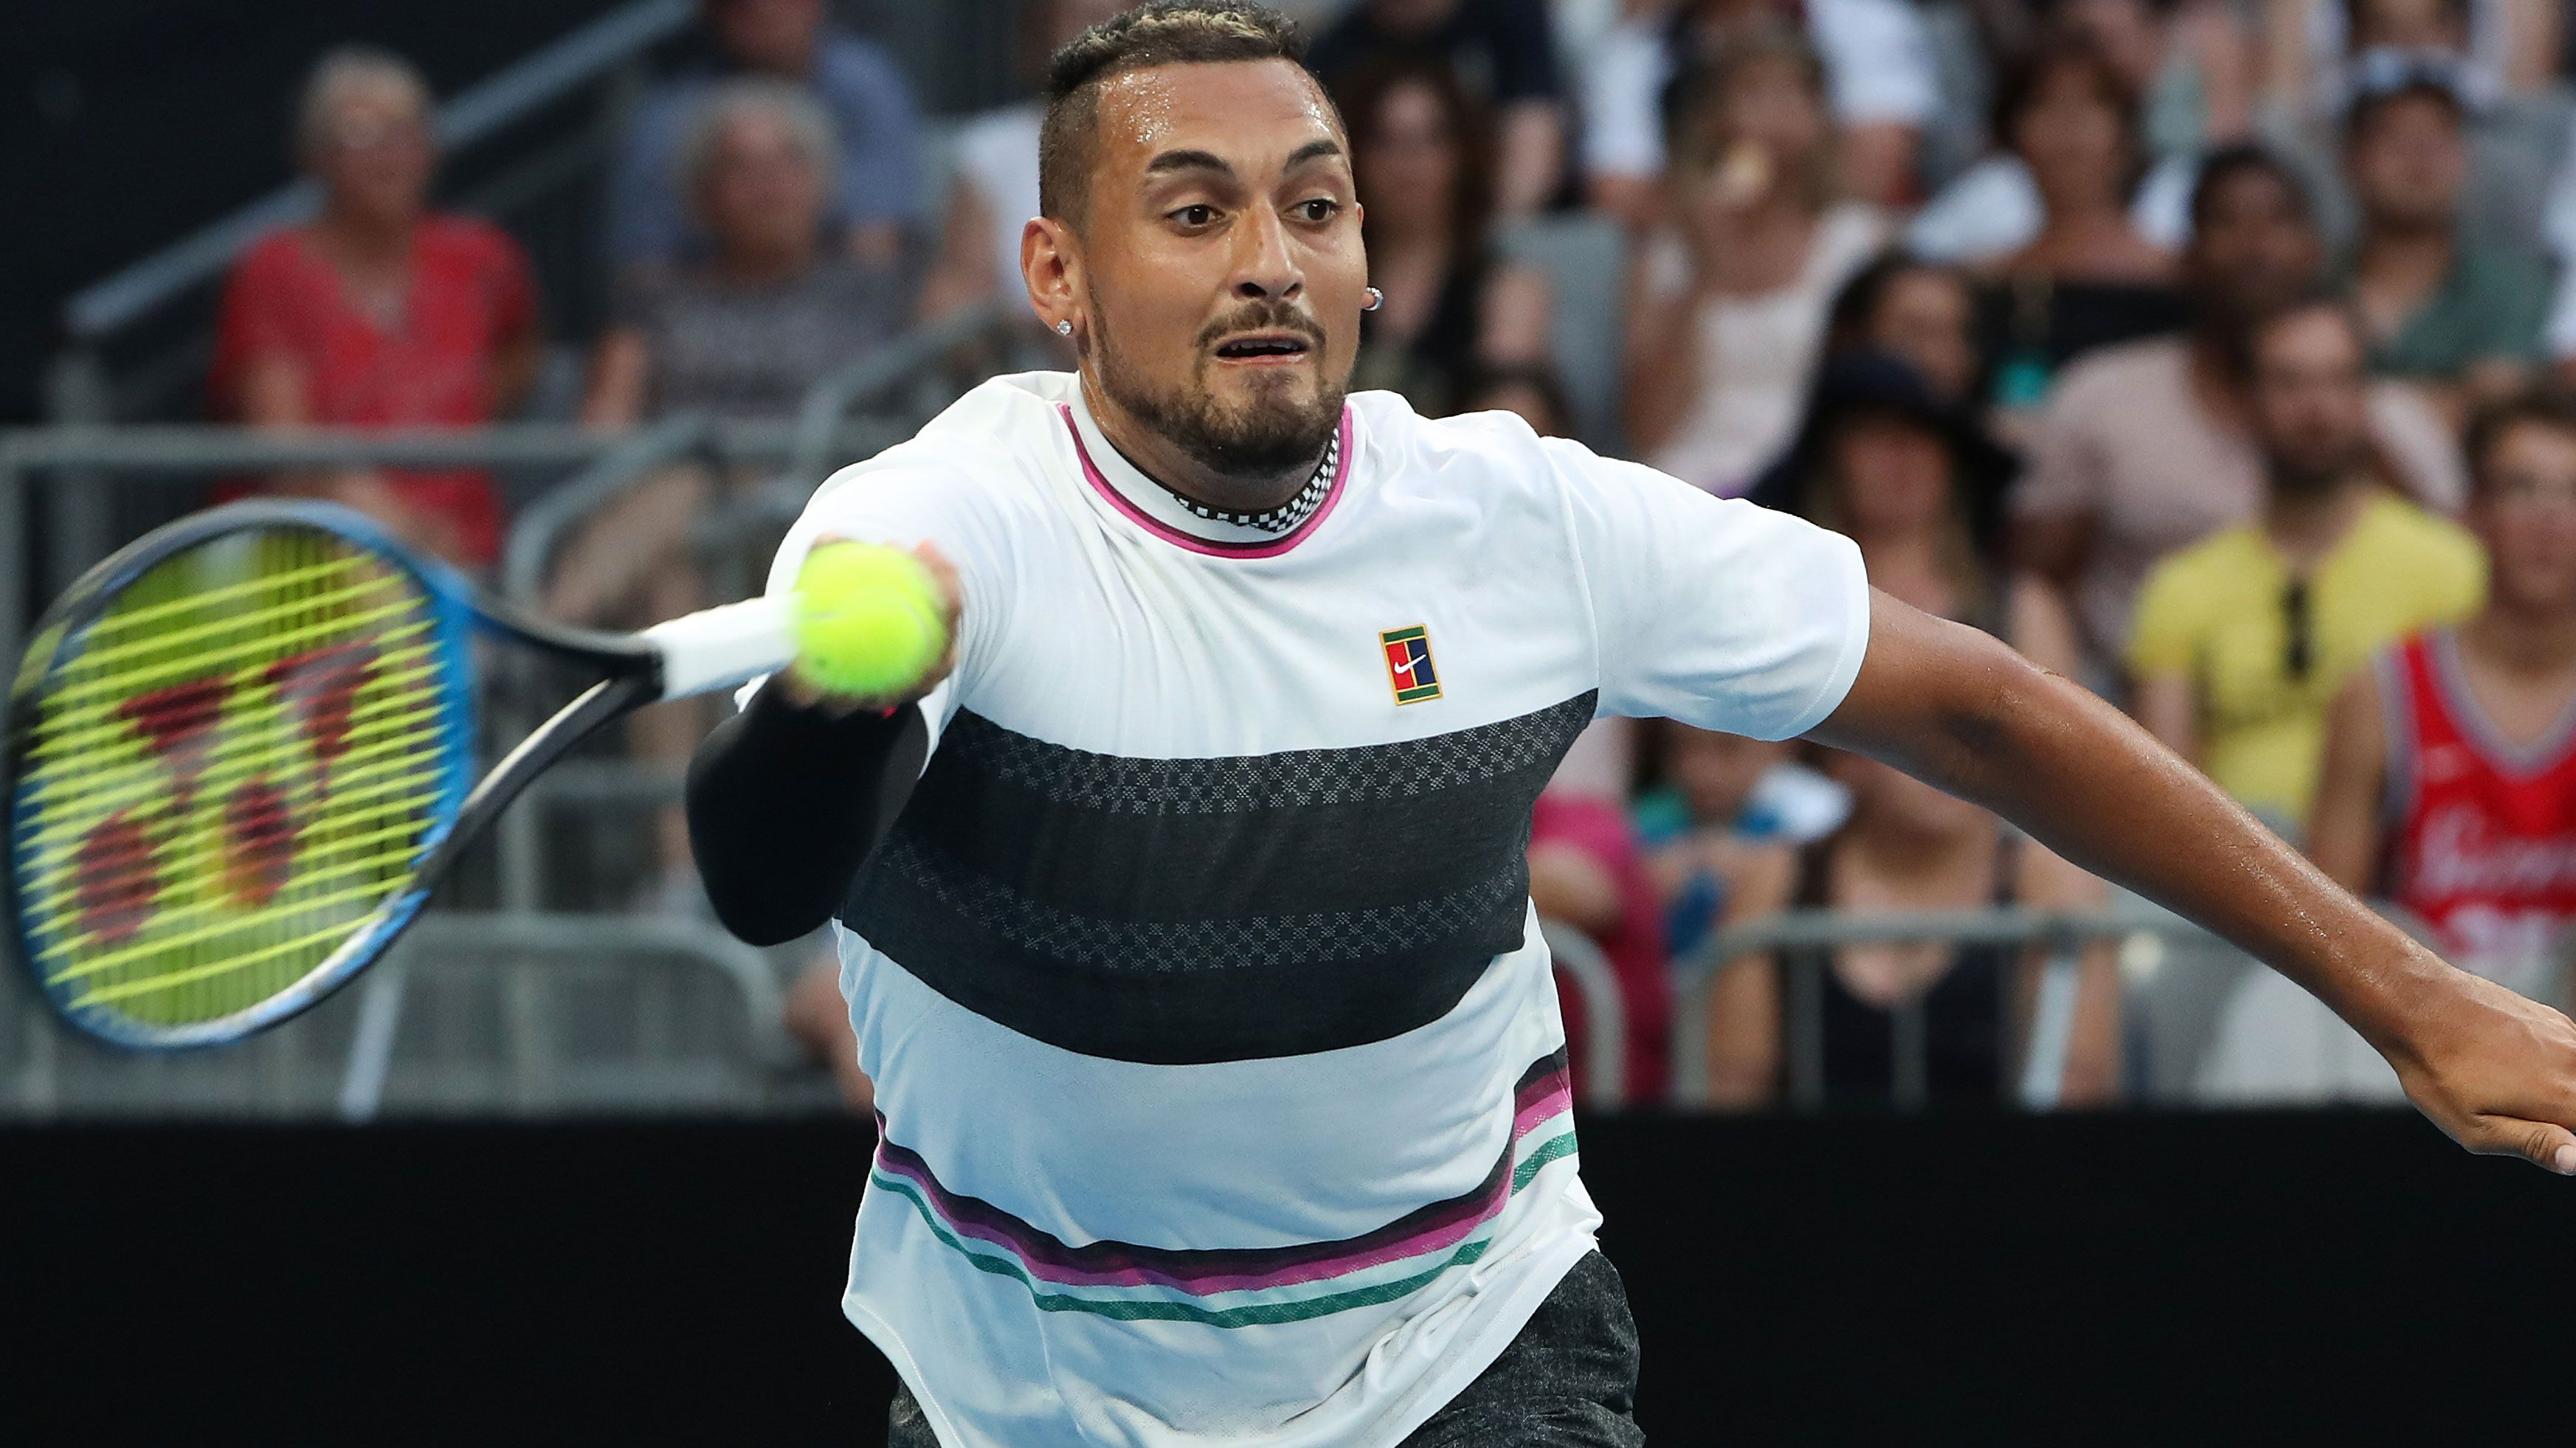 Channel Nine confirms commentary role for Nick Kyrgios